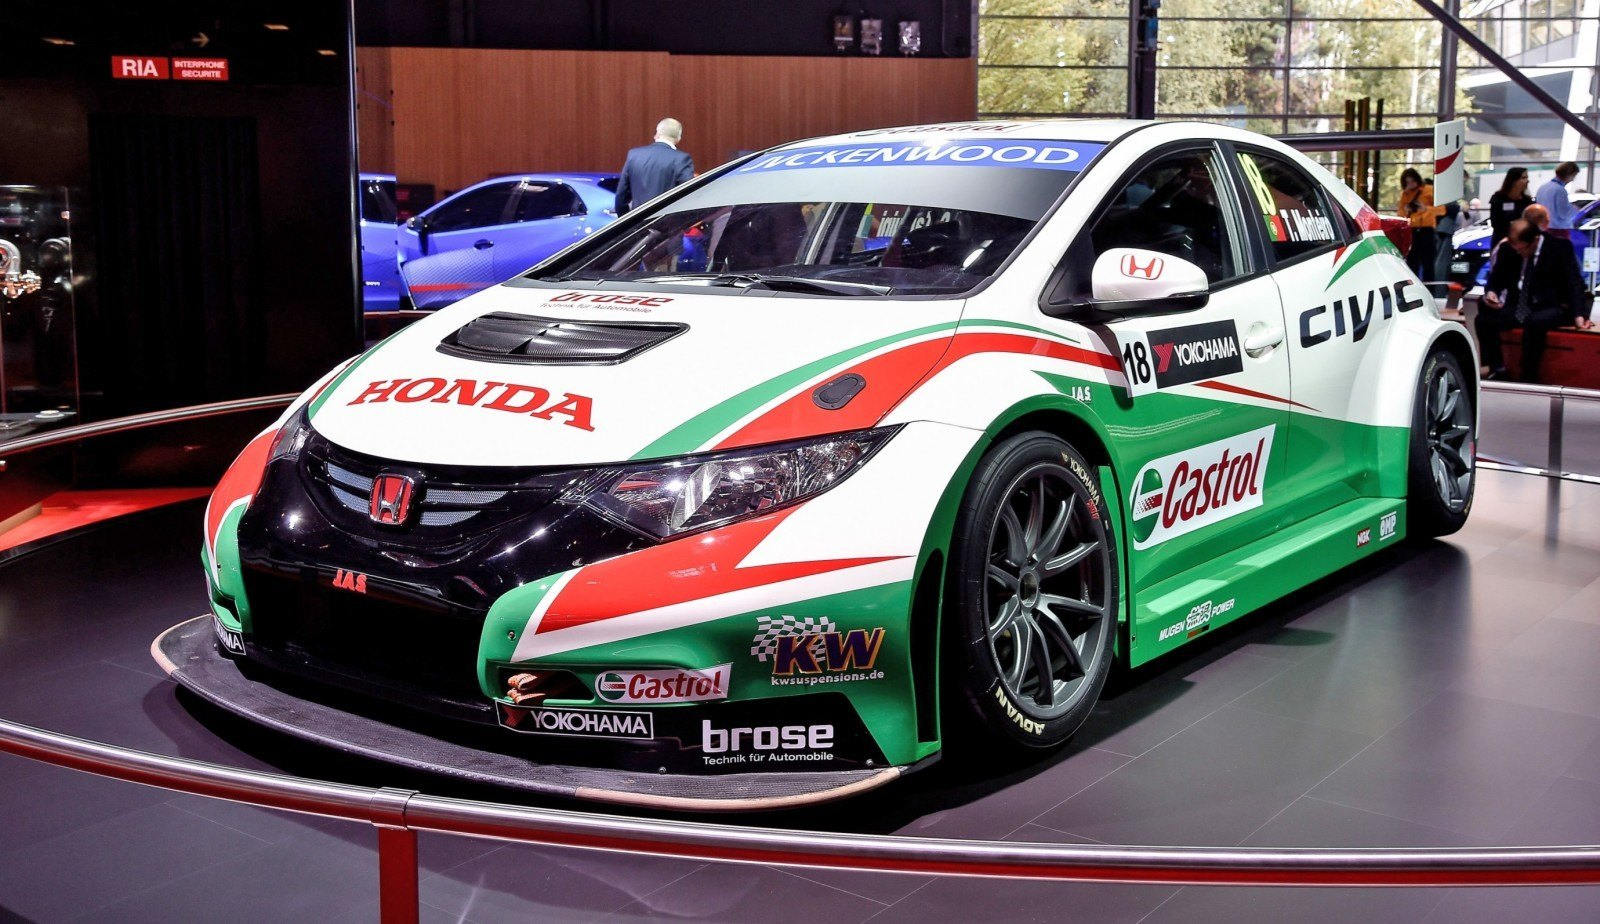 2015 Honda Civic Type R Concept Two Makes Paris Debut 16